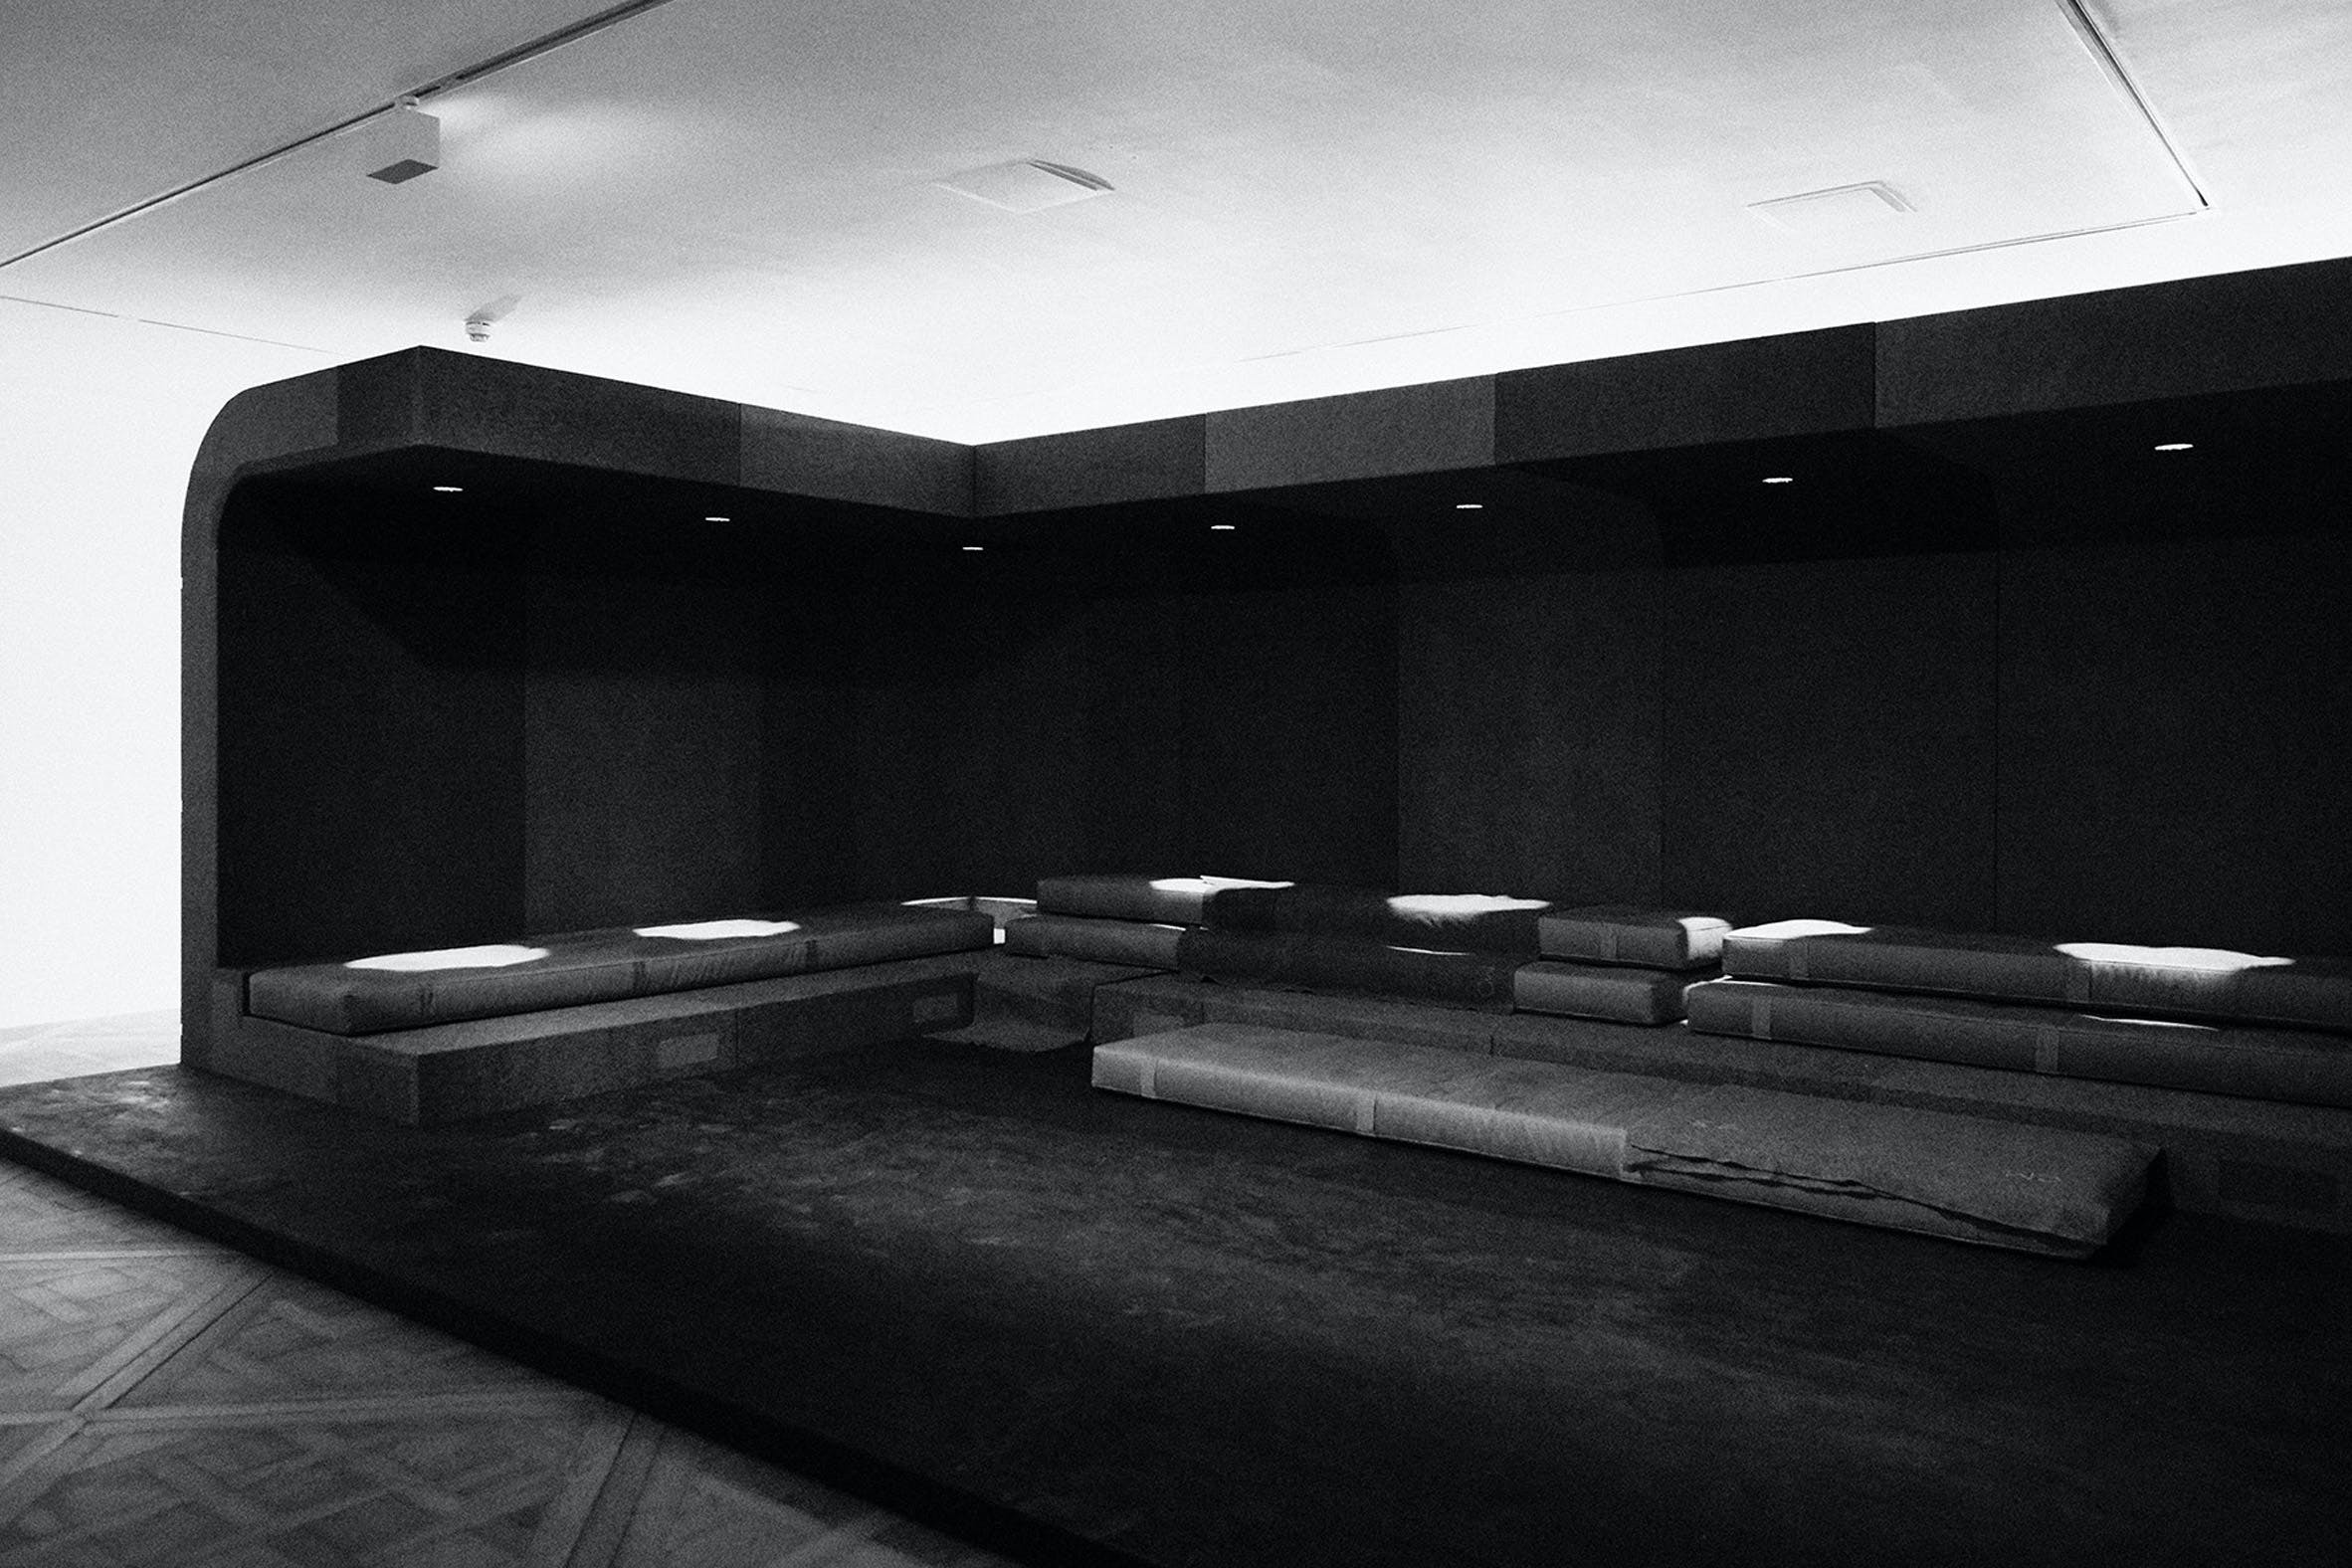 BRUTALIST ARCHITECTURE: RICK OWENS'S MONOLITHIC SOFA SYSTEM